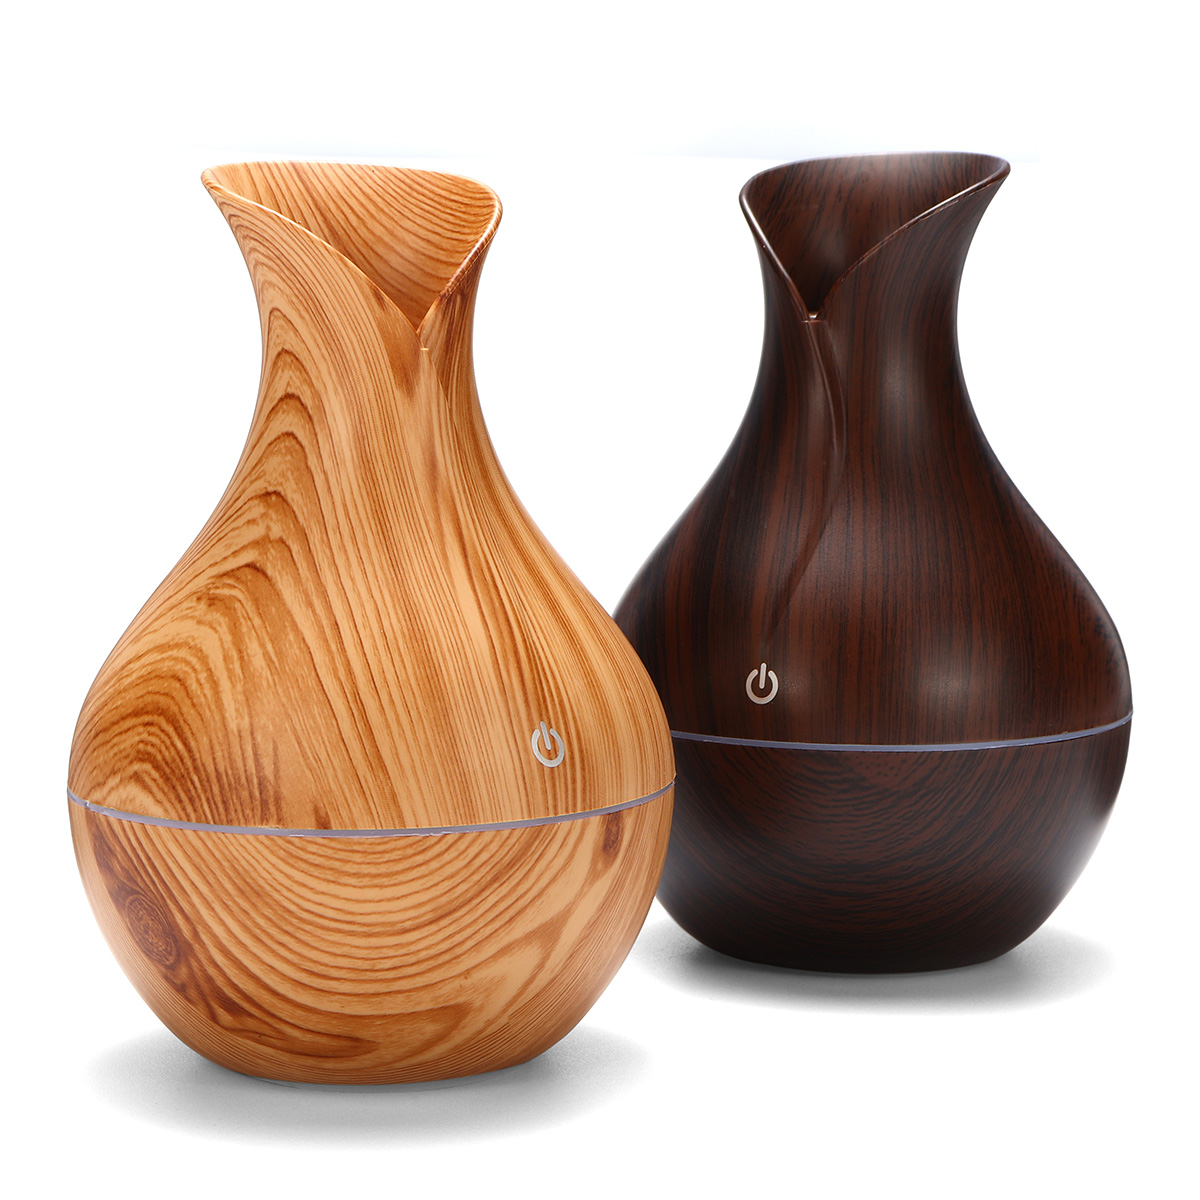 USB Electric Wood Grain Ultrasonic Cool Mist Humidifier Aroma Essential Oil Diffuser 7 Color LED Lights For Office Home